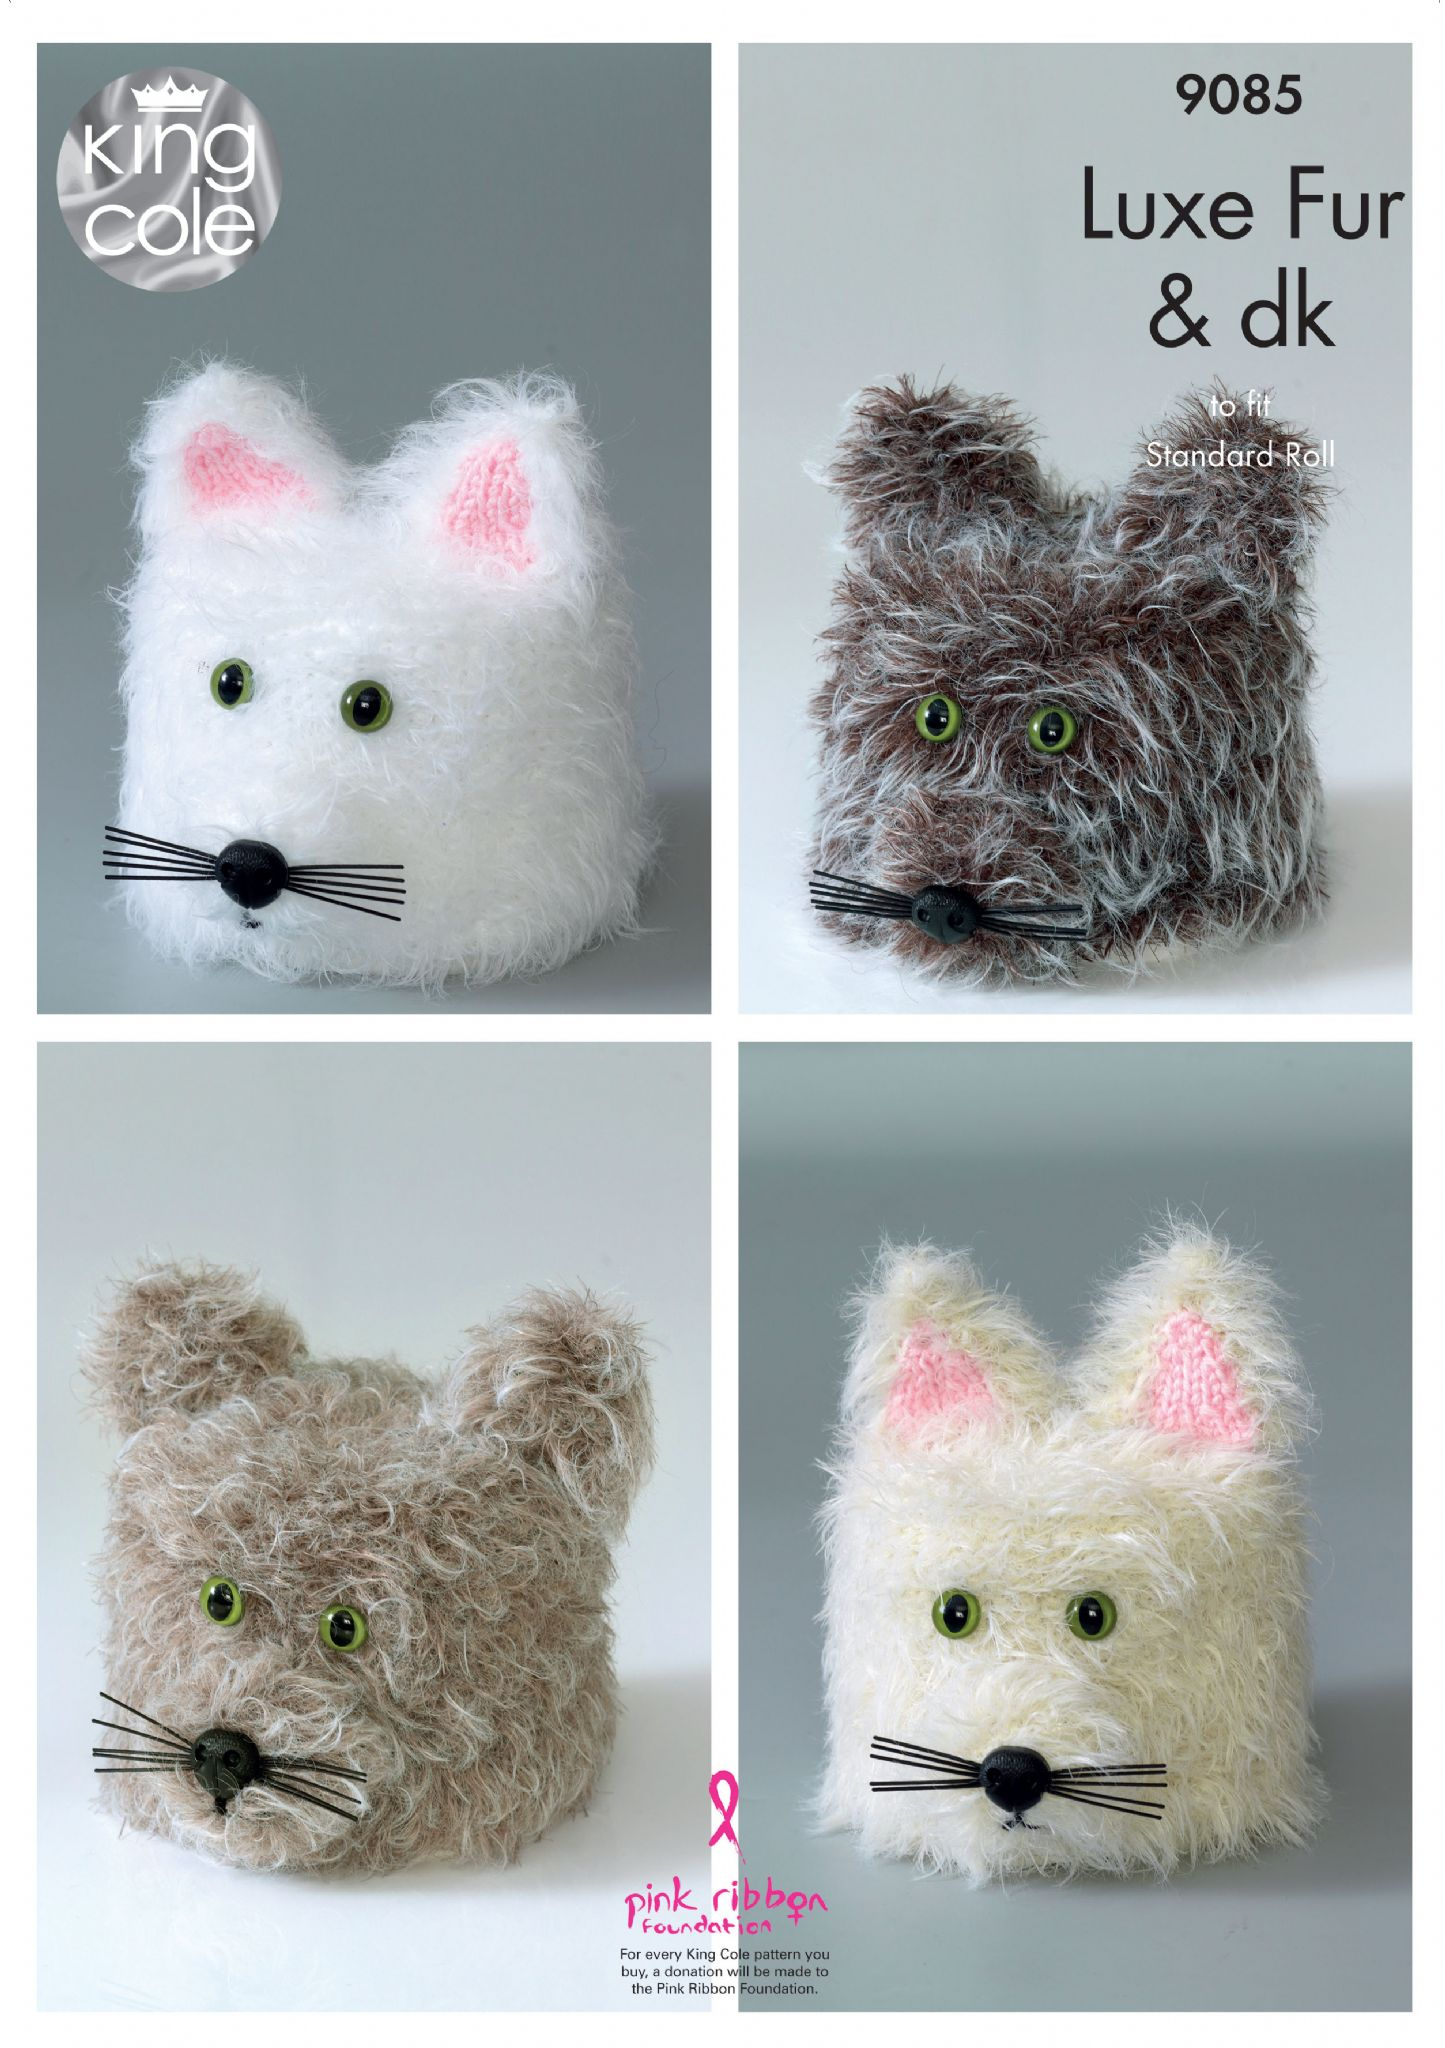 9085 - KING COLE LUXE FUR DOLLYMIX DK CAT TOILET ROLL COVER KNITTING ...